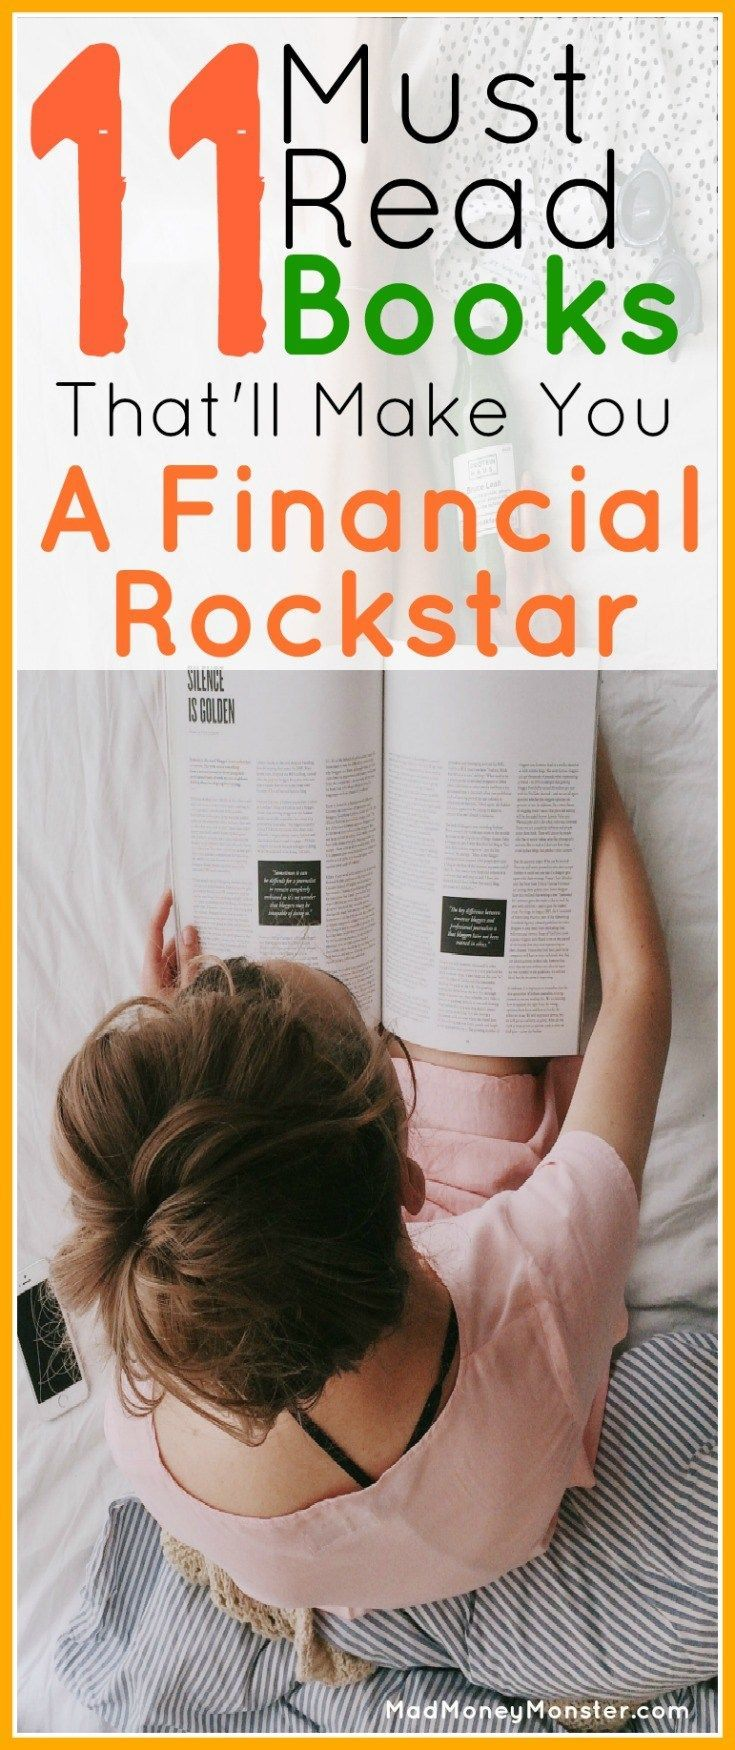 A list of 11 must-read books you can use to change your financial future. Whether you're just starting out, deep in debt, or close to financial independence, there's something on this list for you. Financial Independence | Financial Freedom | Money | Books About Money | Books About Debt | Books About Taking Control Of Money | Financial Guides via @MadMoneyMonster